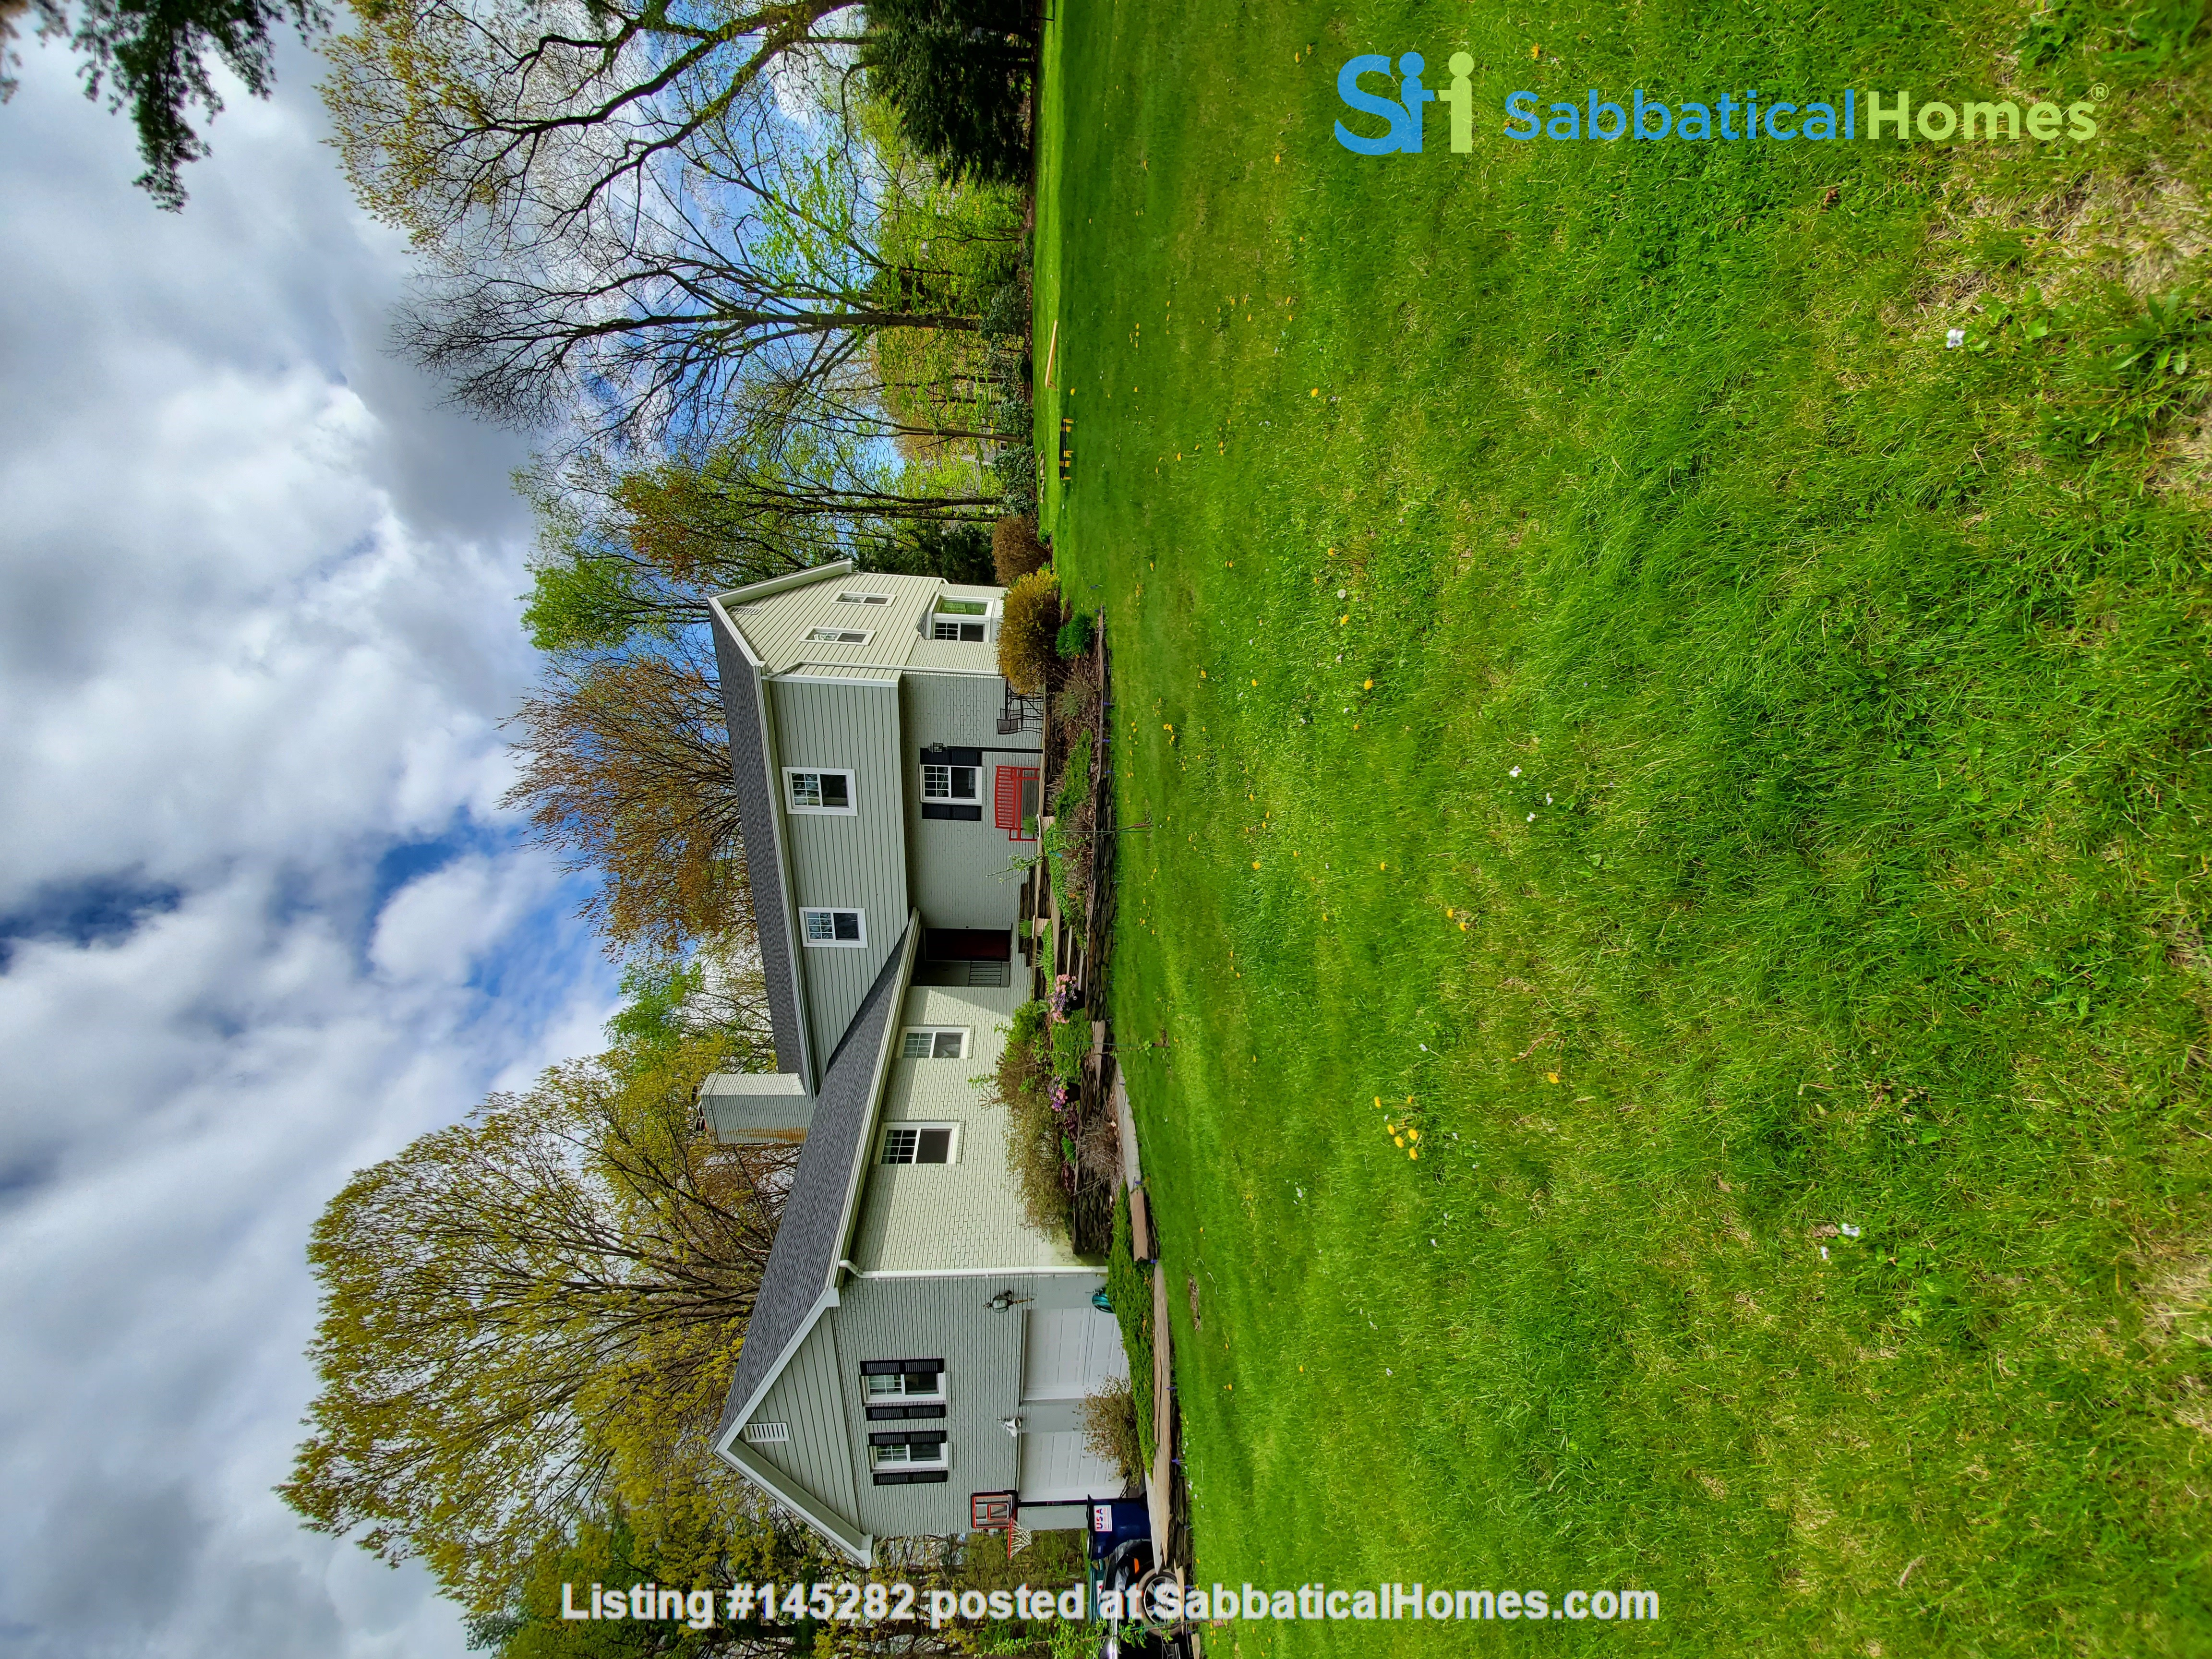 Spacious, Peaceful Getaway in Beautiful Amherst, MA, 4 BR 3.5 ba Home Rental in Amherst, Massachusetts, United States 0